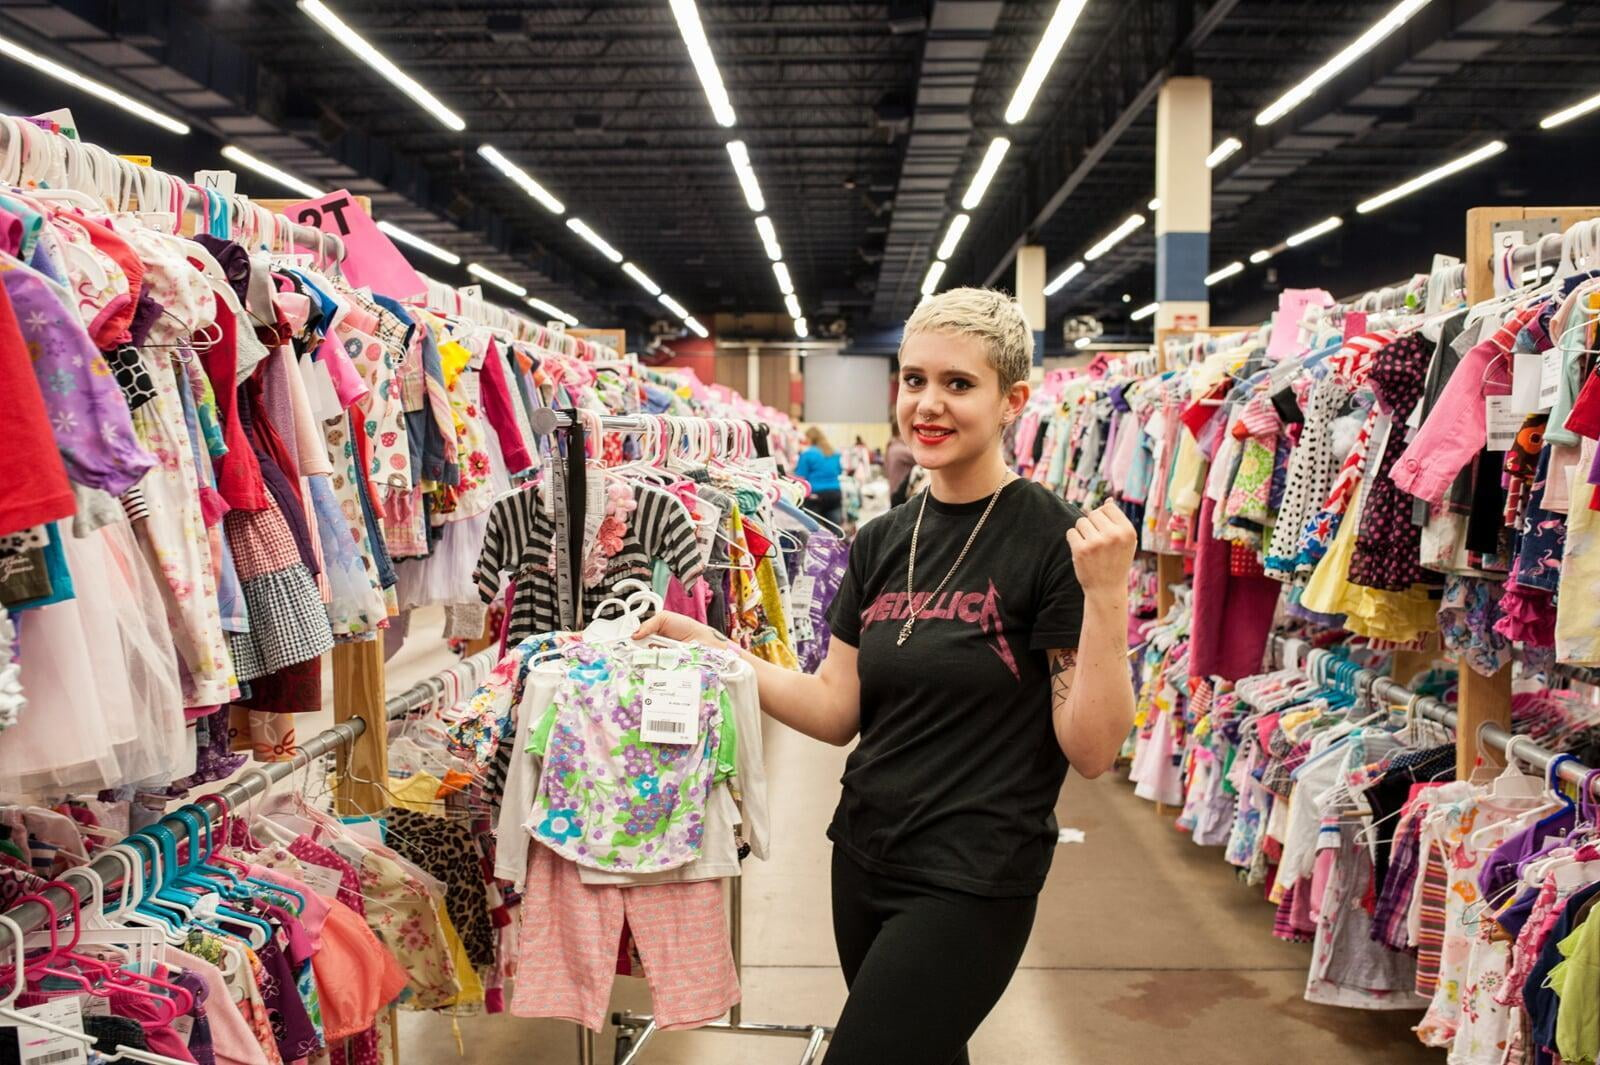 A young JBF shopper mom in a black Metallica T-shirt holds an outfit she intends to buy at her local JBF sale.